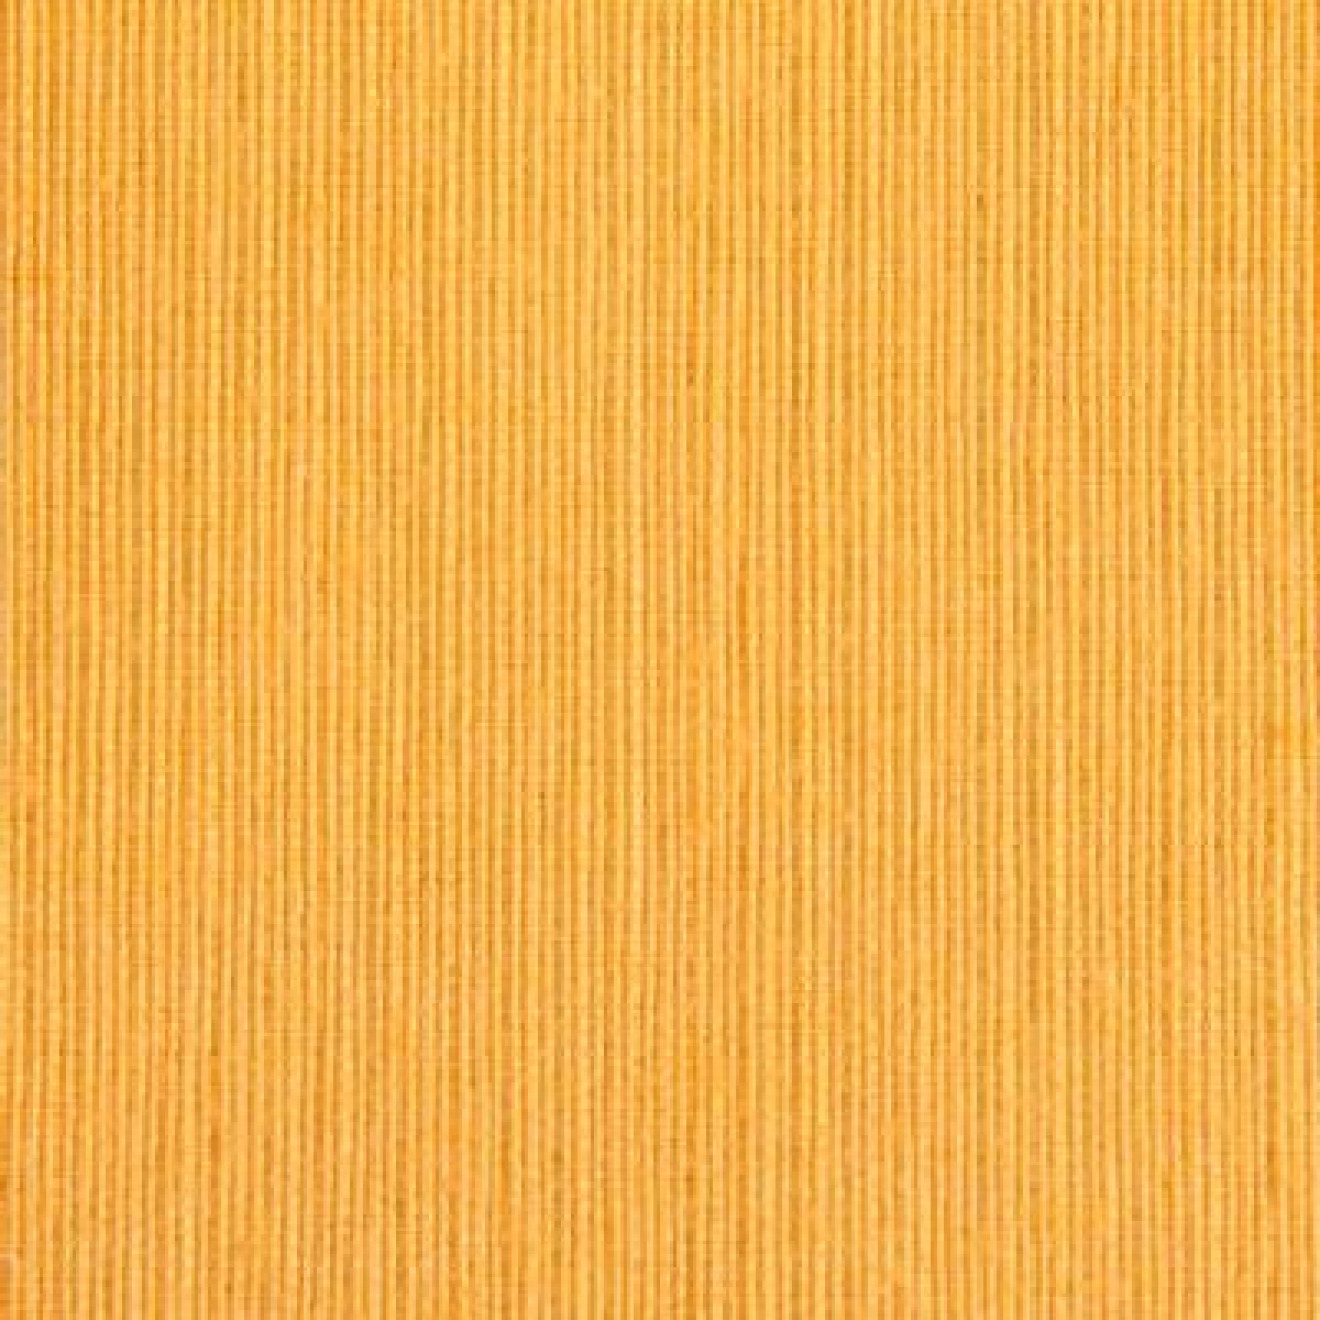 Rolle - Acrylstoff Loneta Color 114